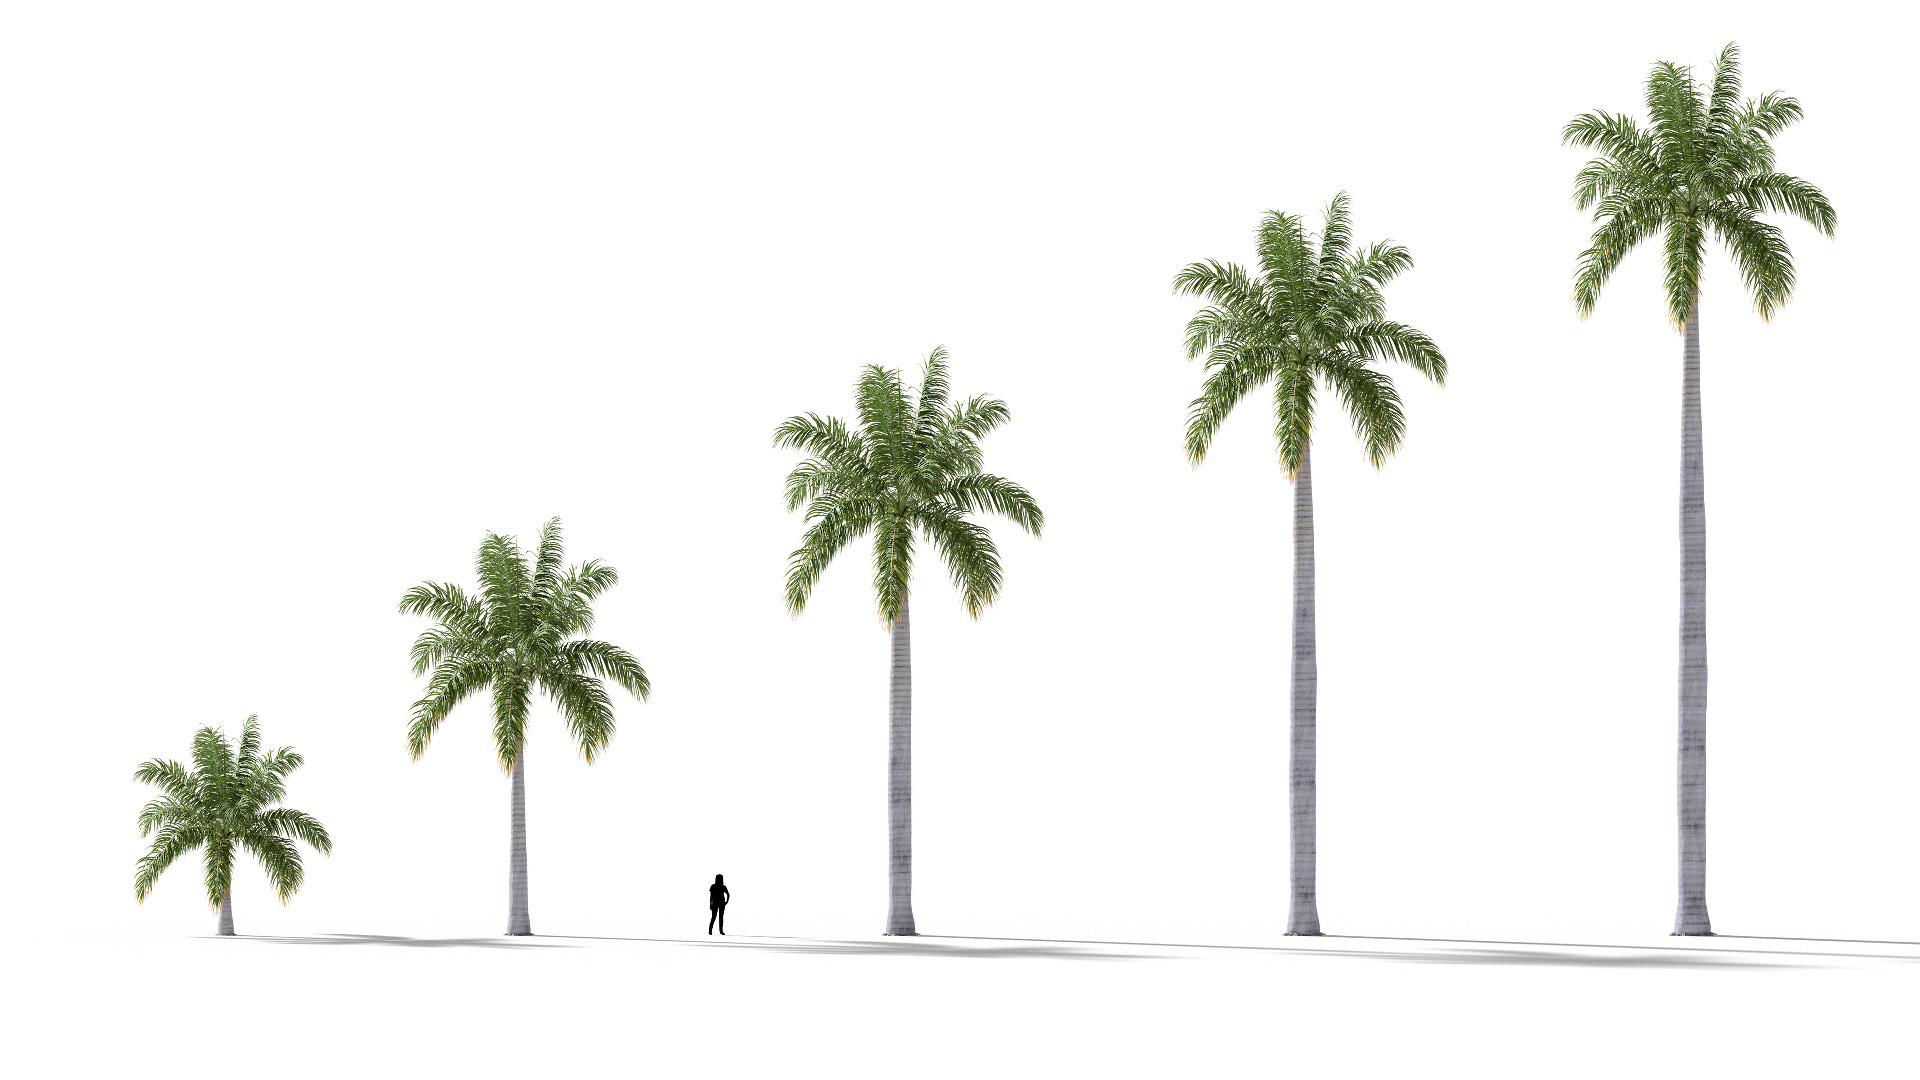 3D model of the Royal palm Roystonea regia maturity variations